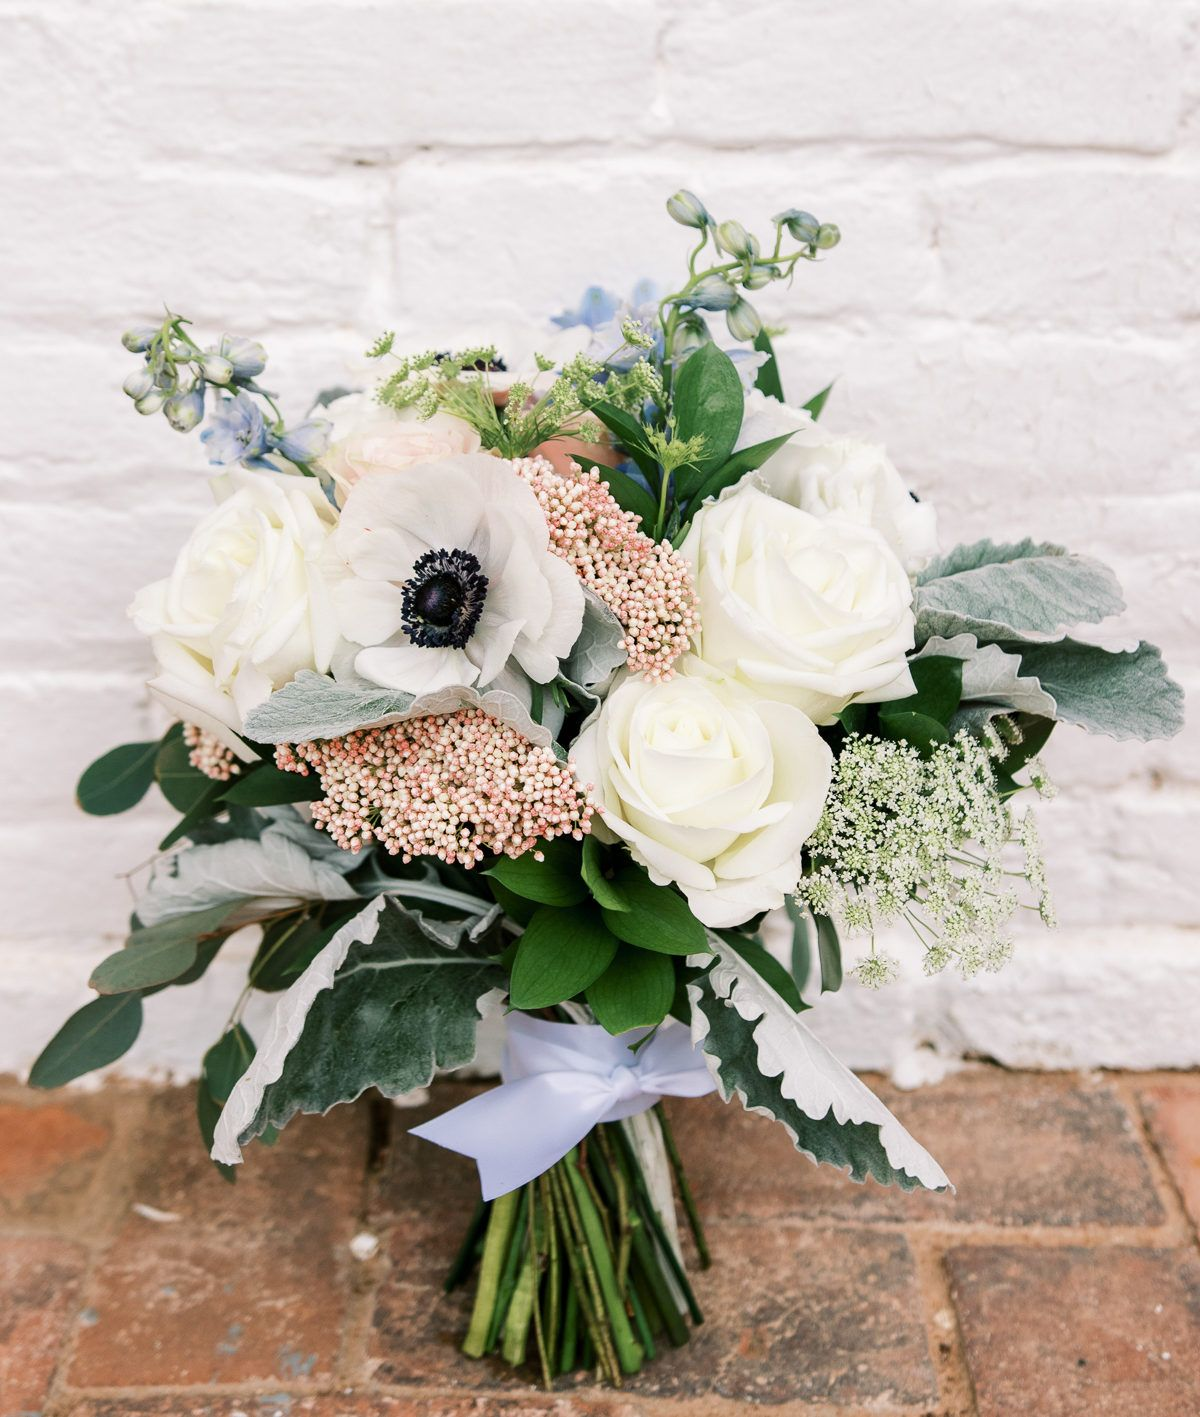 Wedding Bouquet Inspiration From Morgan Newsom Photography Bouquet Styles Flower Colors And Floral Designers To Hel In 2020 Wedding Bouquets Wedding Flowers Bouquet